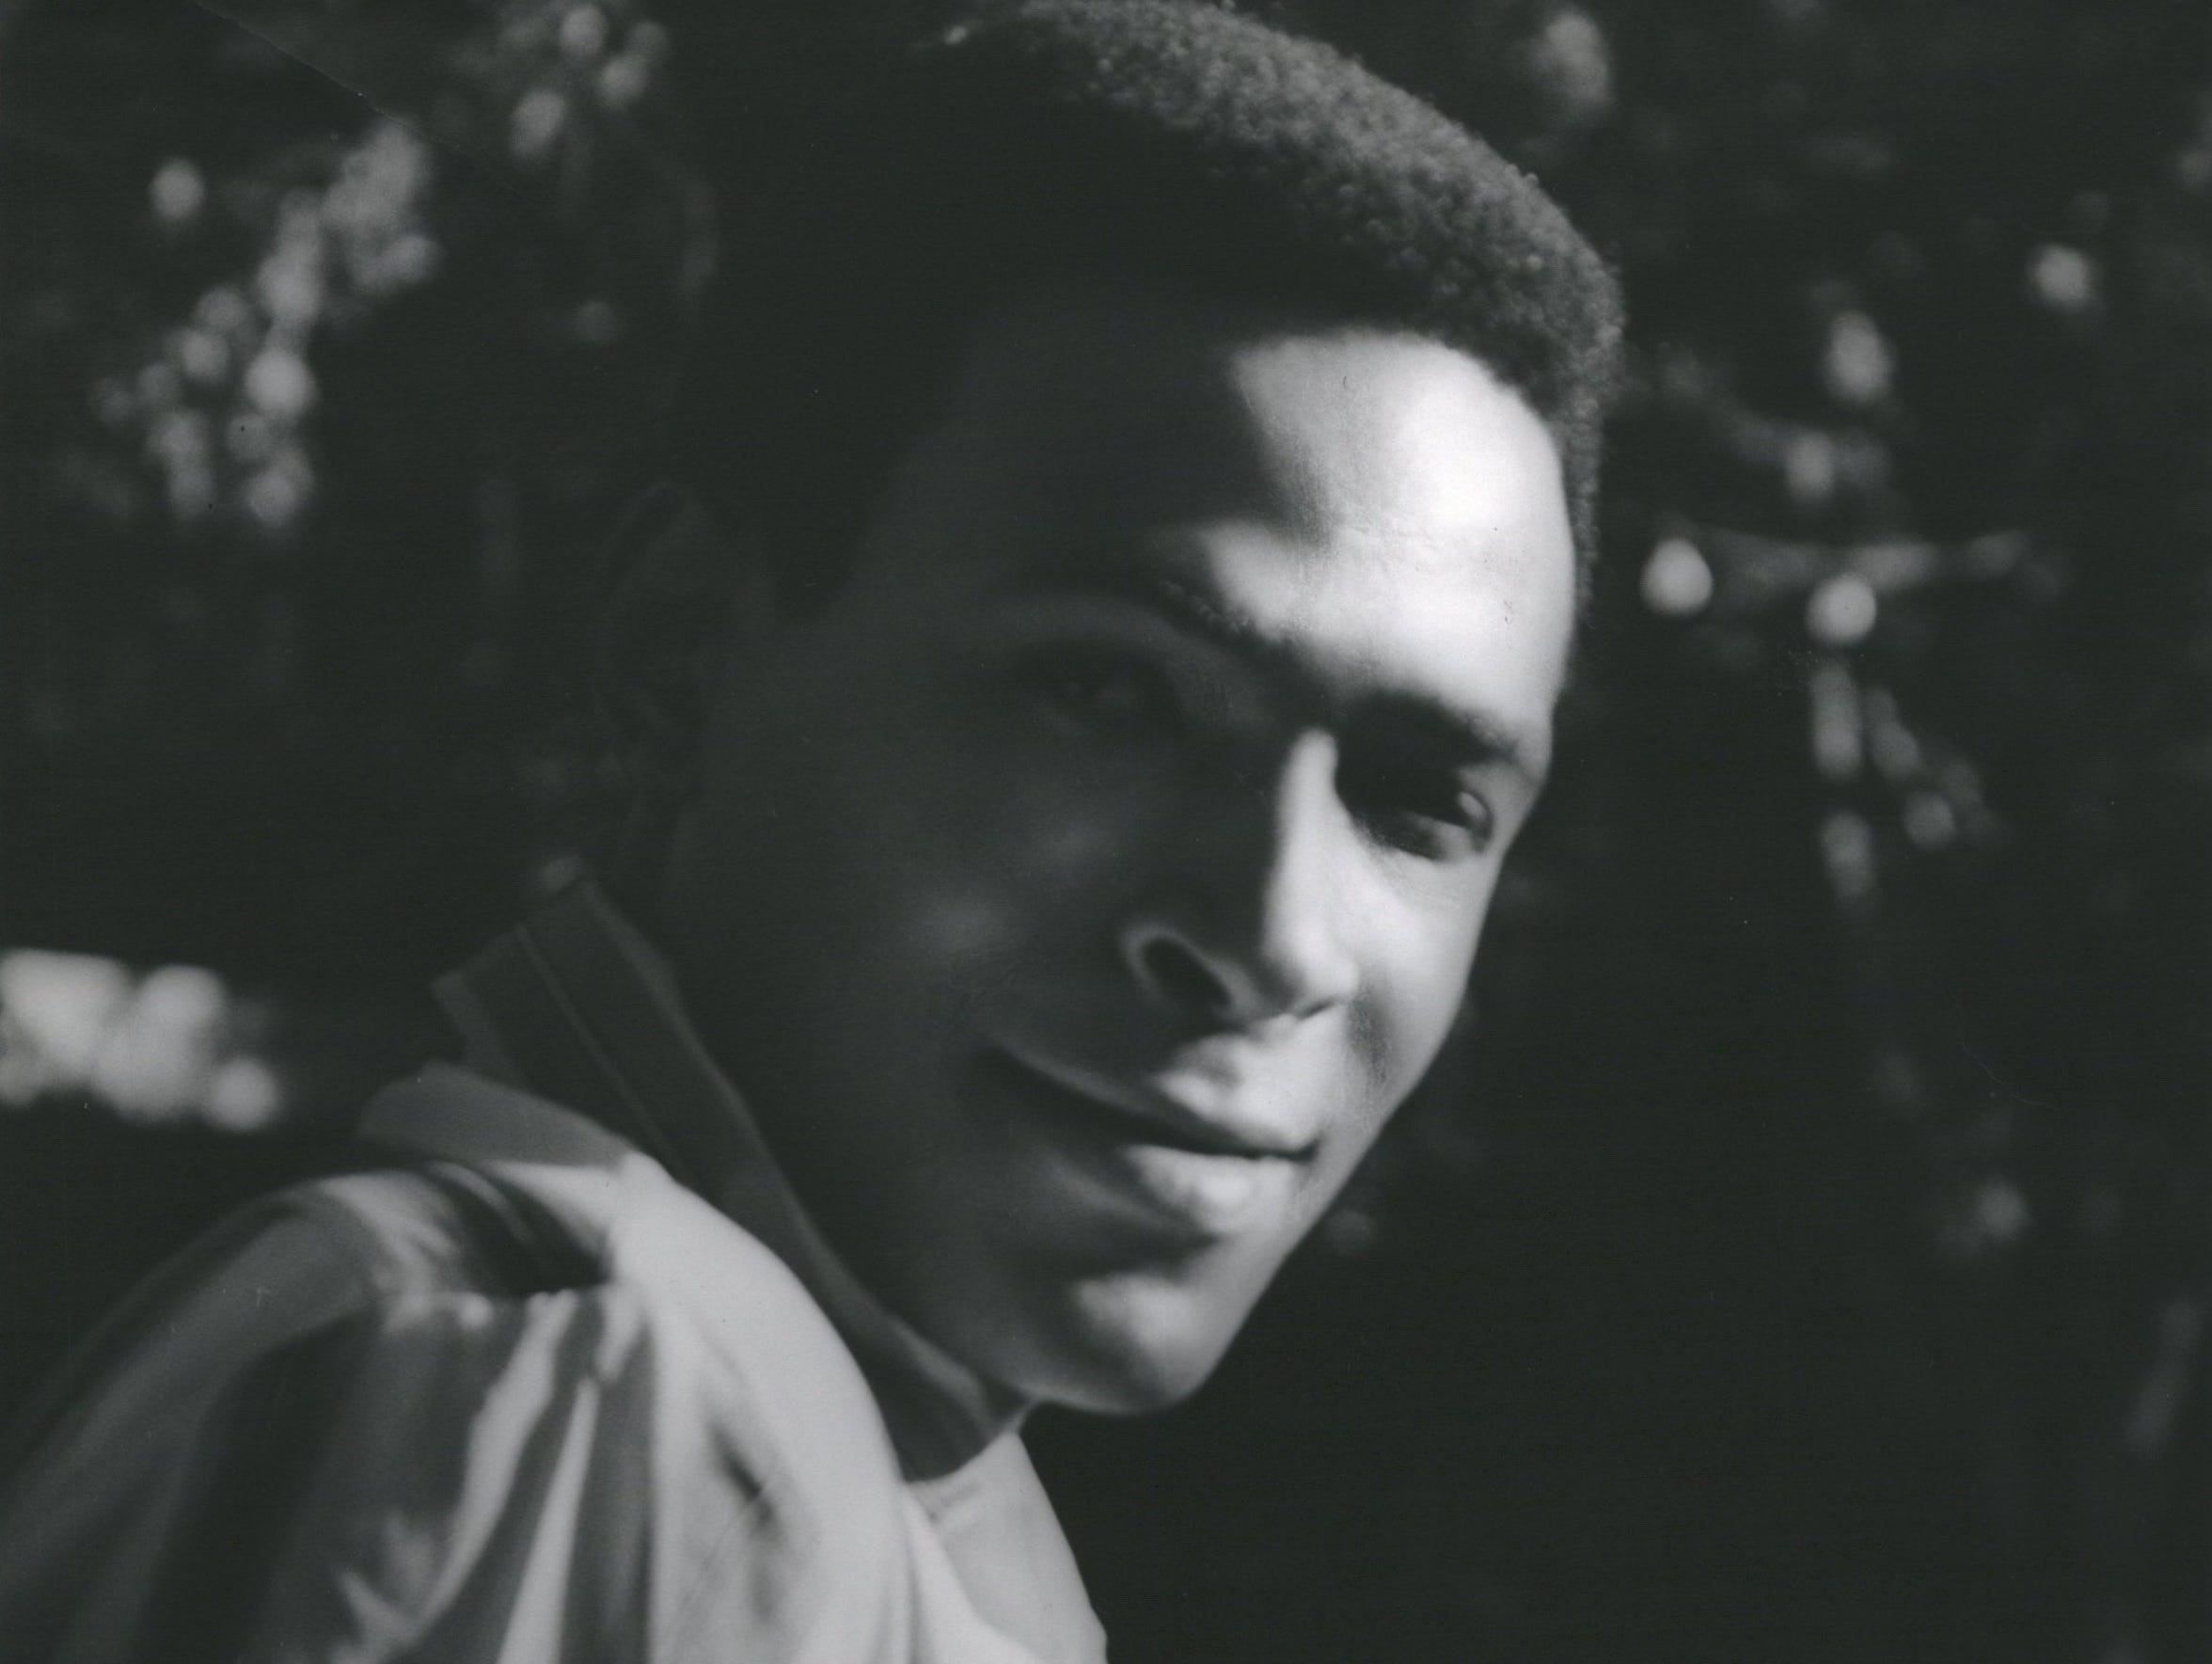 Marvin Gaye in 1968